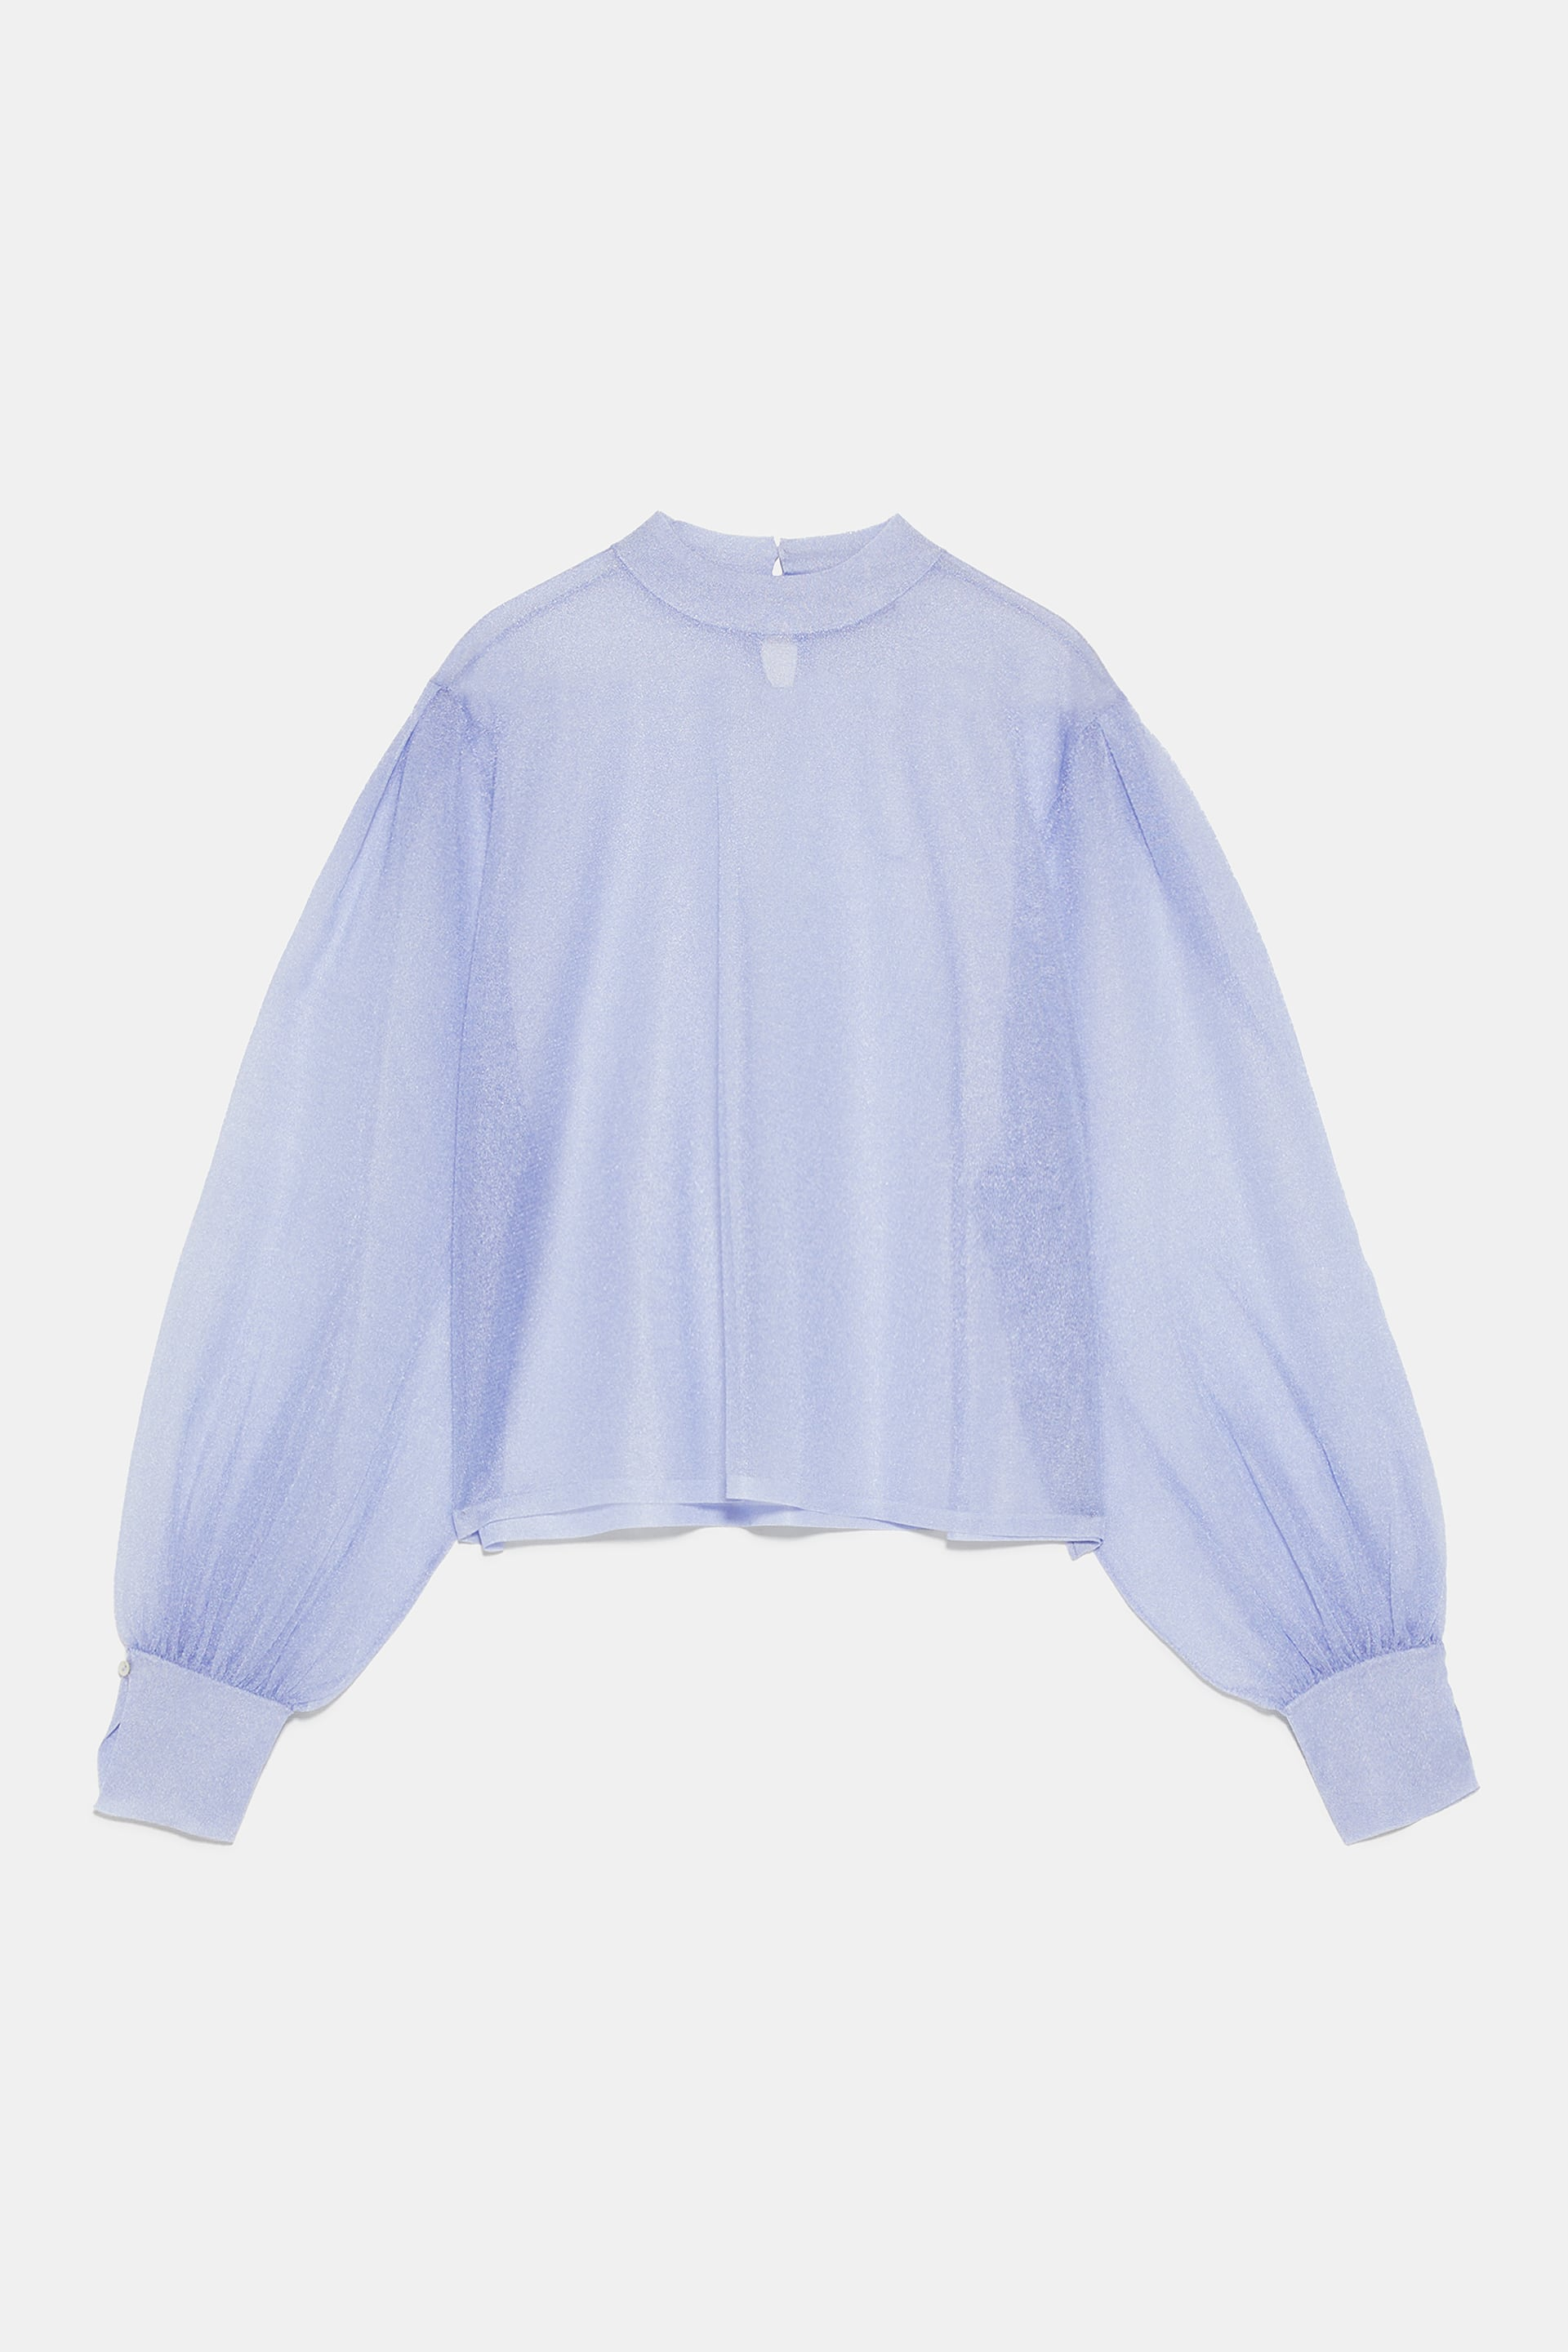 https://www.zara.com/us/en/sparkly-semi-sheer-top-p09874012.html?v1=8474739&v2=1180380